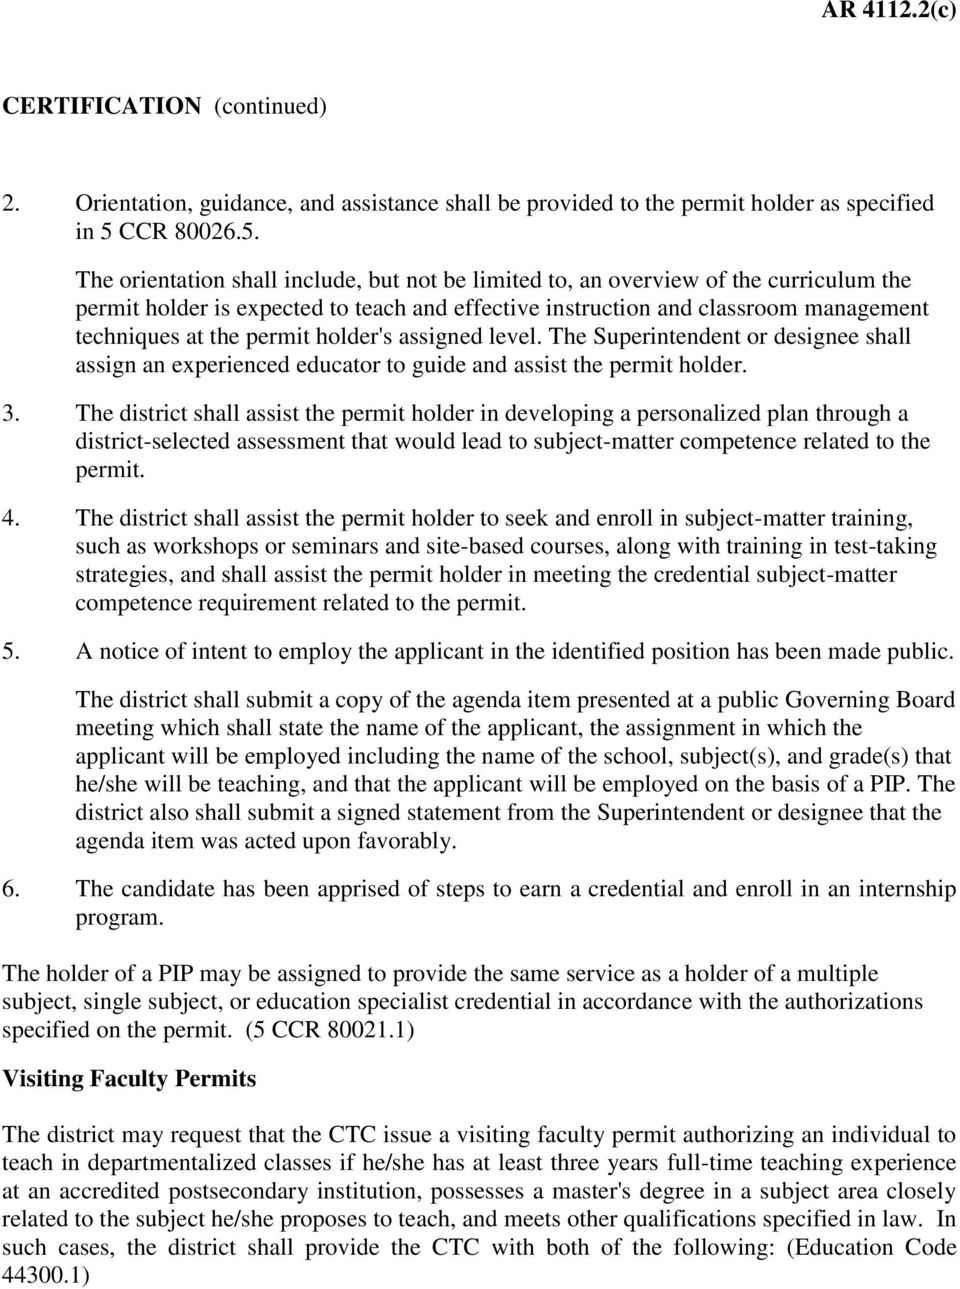 The orientation shall include, but not be limited to, an overview of the curriculum the permit holder is expected to teach and effective instruction and classroom management techniques at the permit